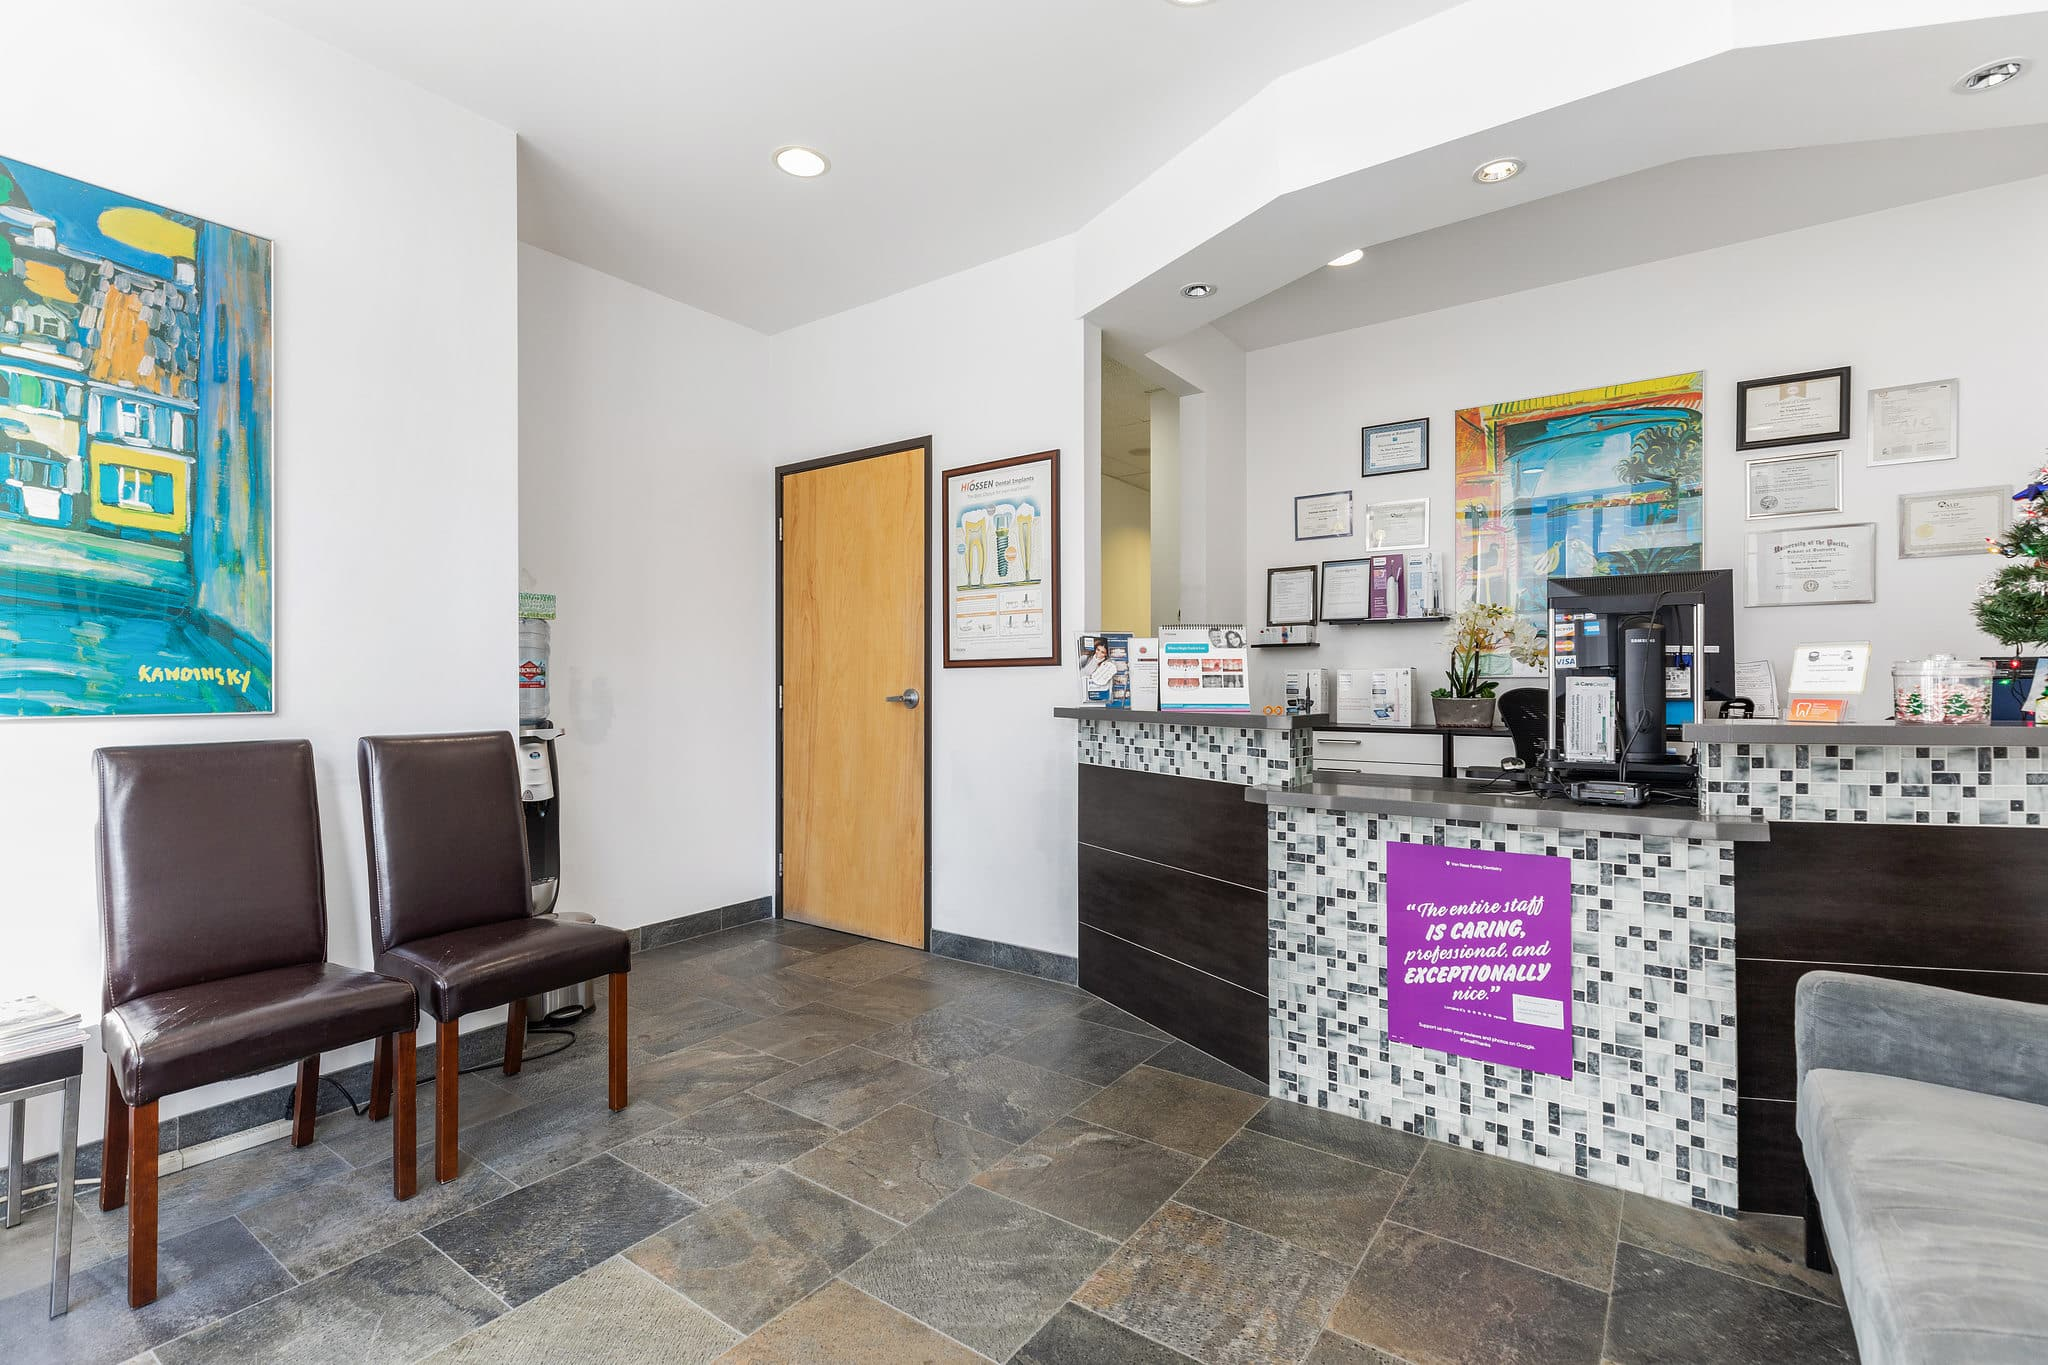 commercial property for sale in San Francisco